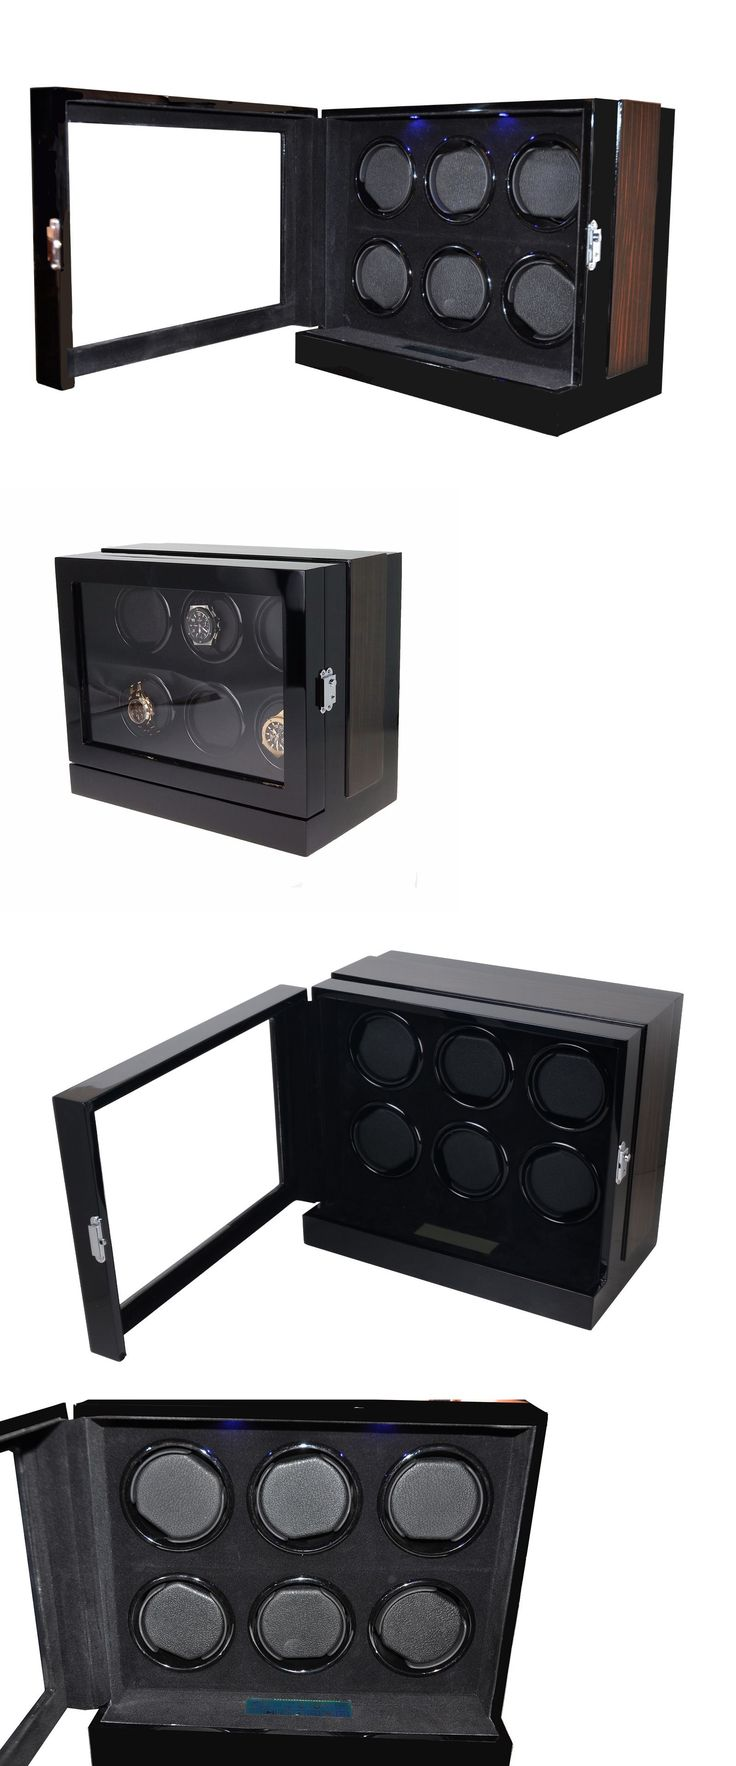 Boxes Cases and Watch Winders 173695: 6 Watch Winder Black Wood Velvet Lcd Touch Digital Led Japan Motor Box 8203M -> BUY IT NOW ONLY: $349 on eBay!